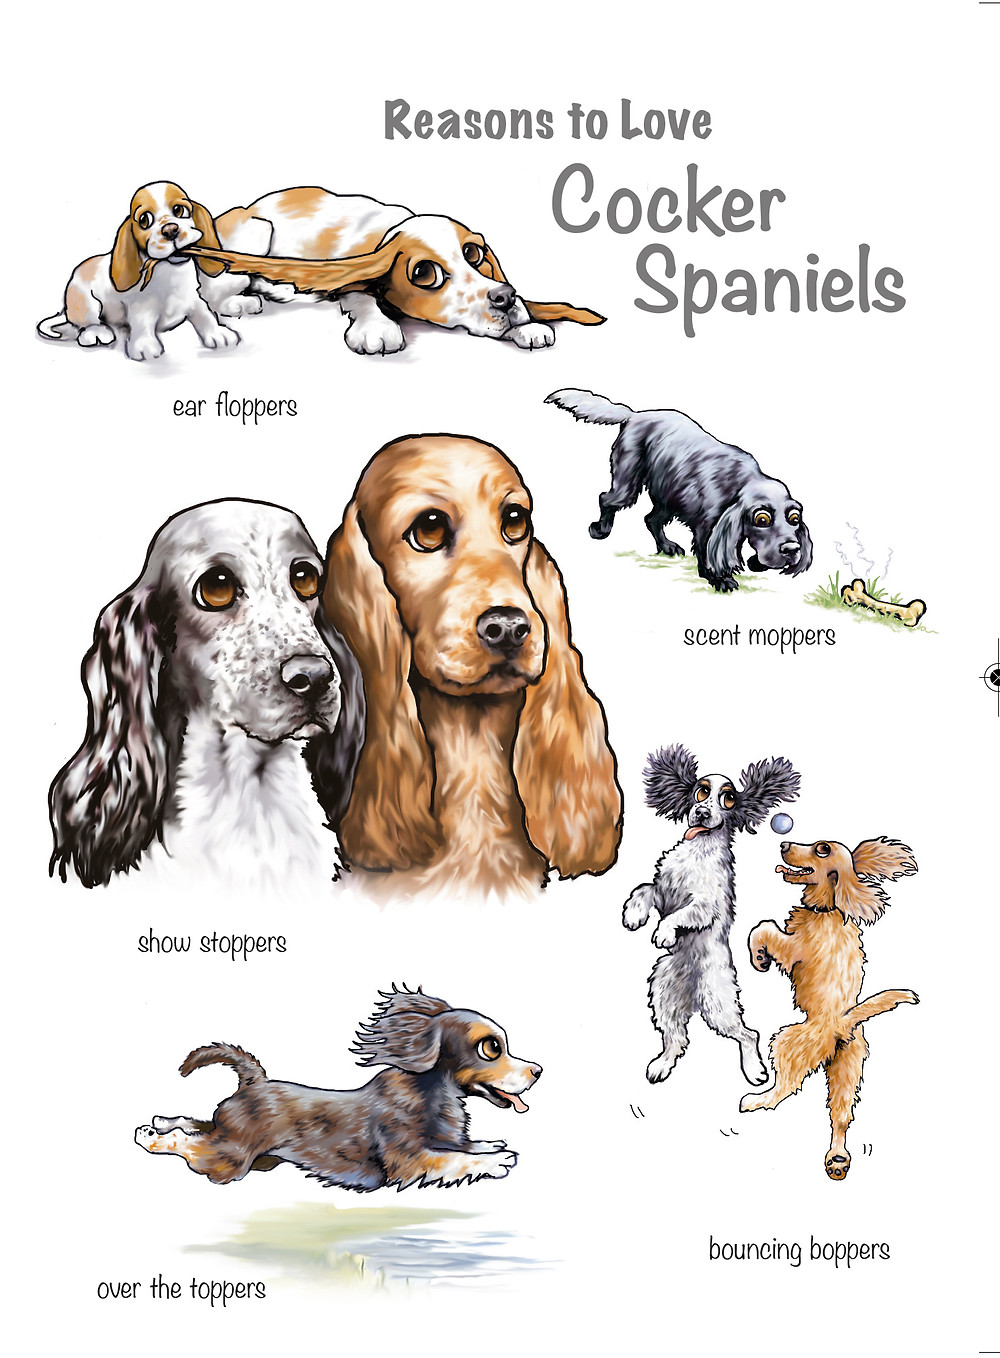 Reasons to Love Cocker Spaniels